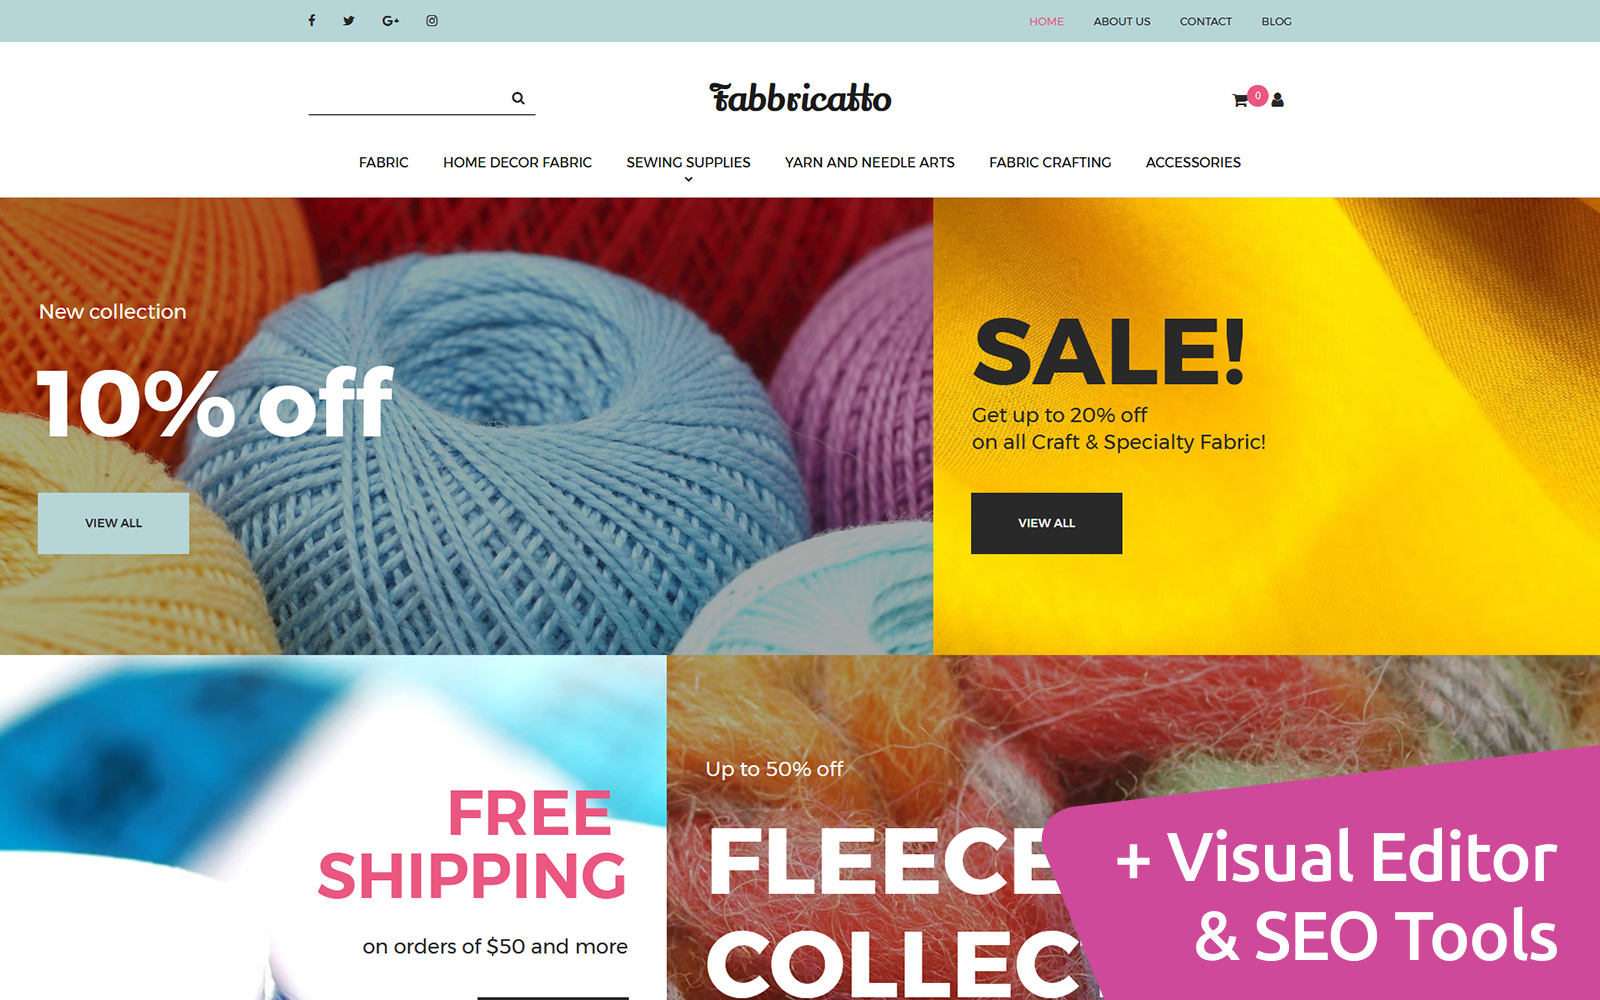 Fabricatto -  Hobbies & Crafts Template Ecommerce MotoCMS №65068